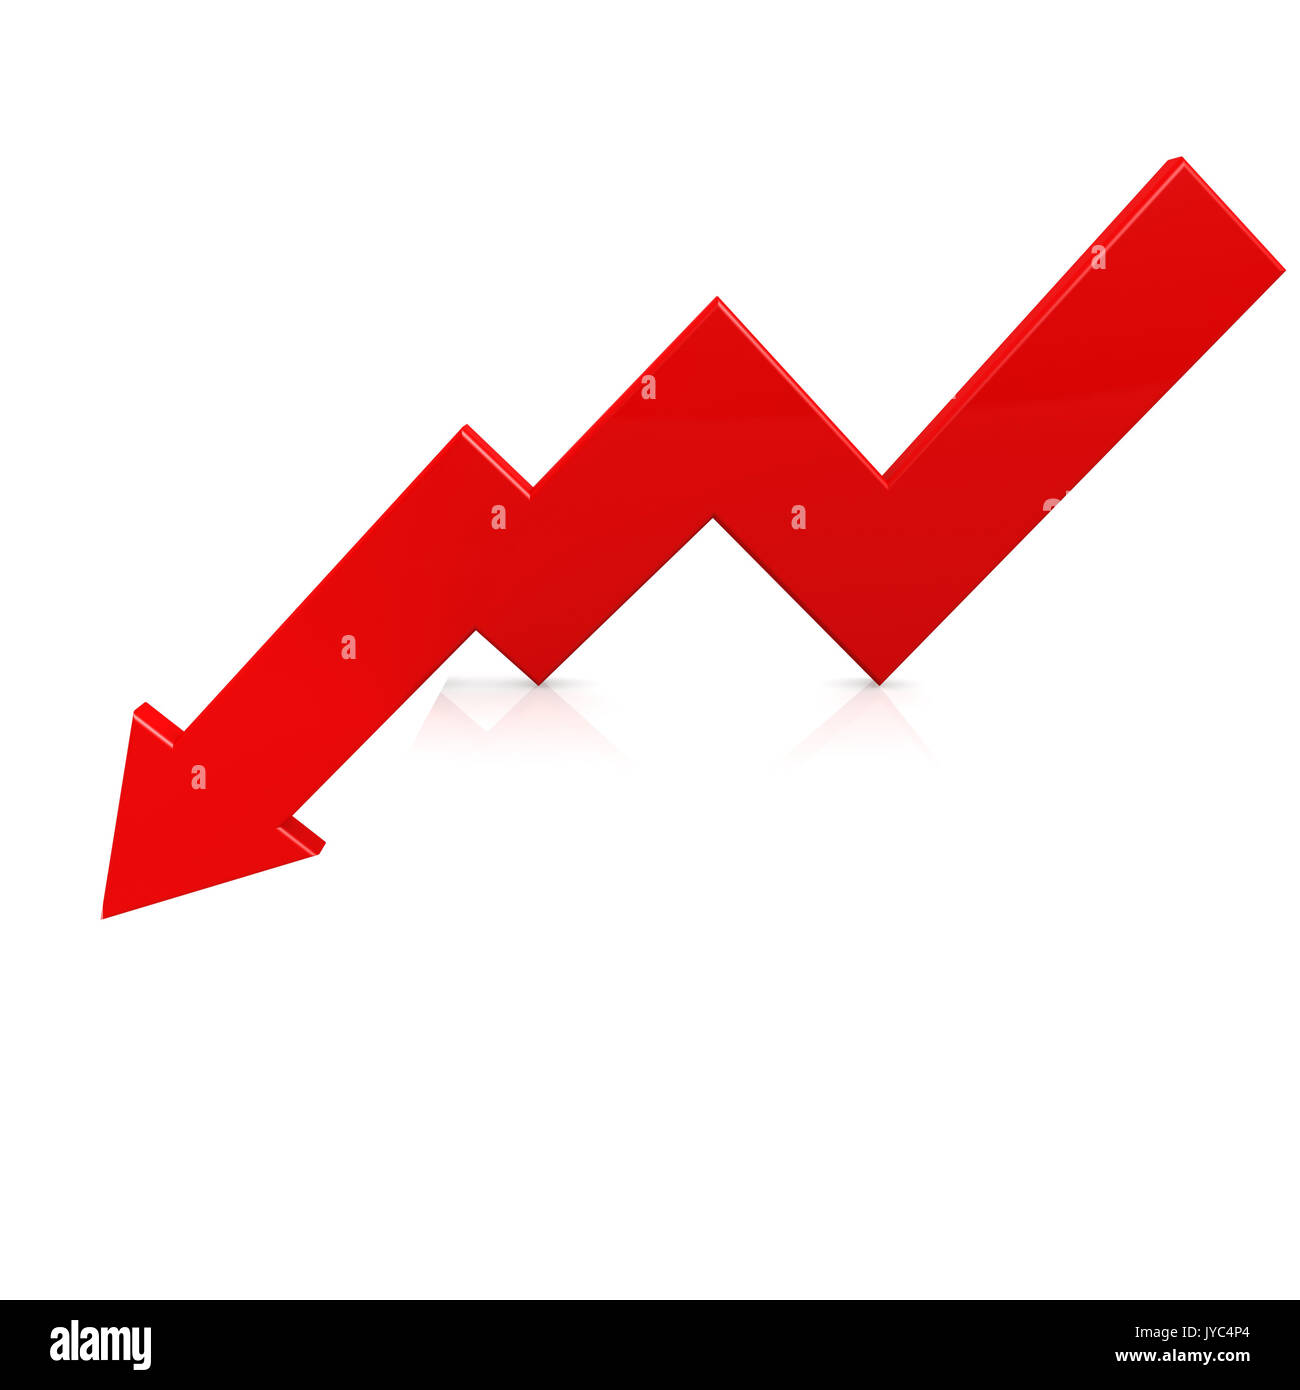 Crisis arrow red image with hi-res rendered artwork that could be used for any graphic design. Stock Photo